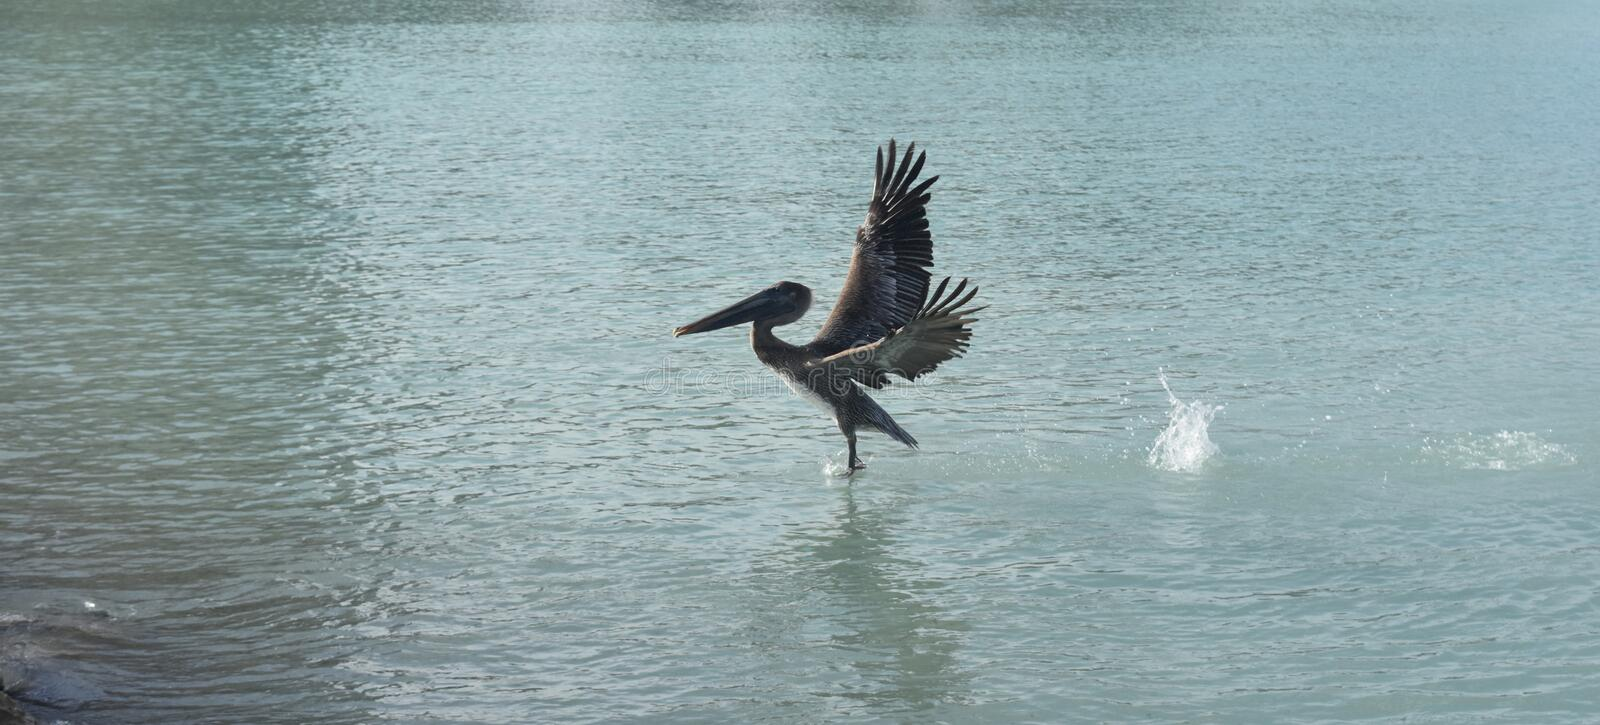 Breathtaking photo of a pelican landing into the water royalty free stock images